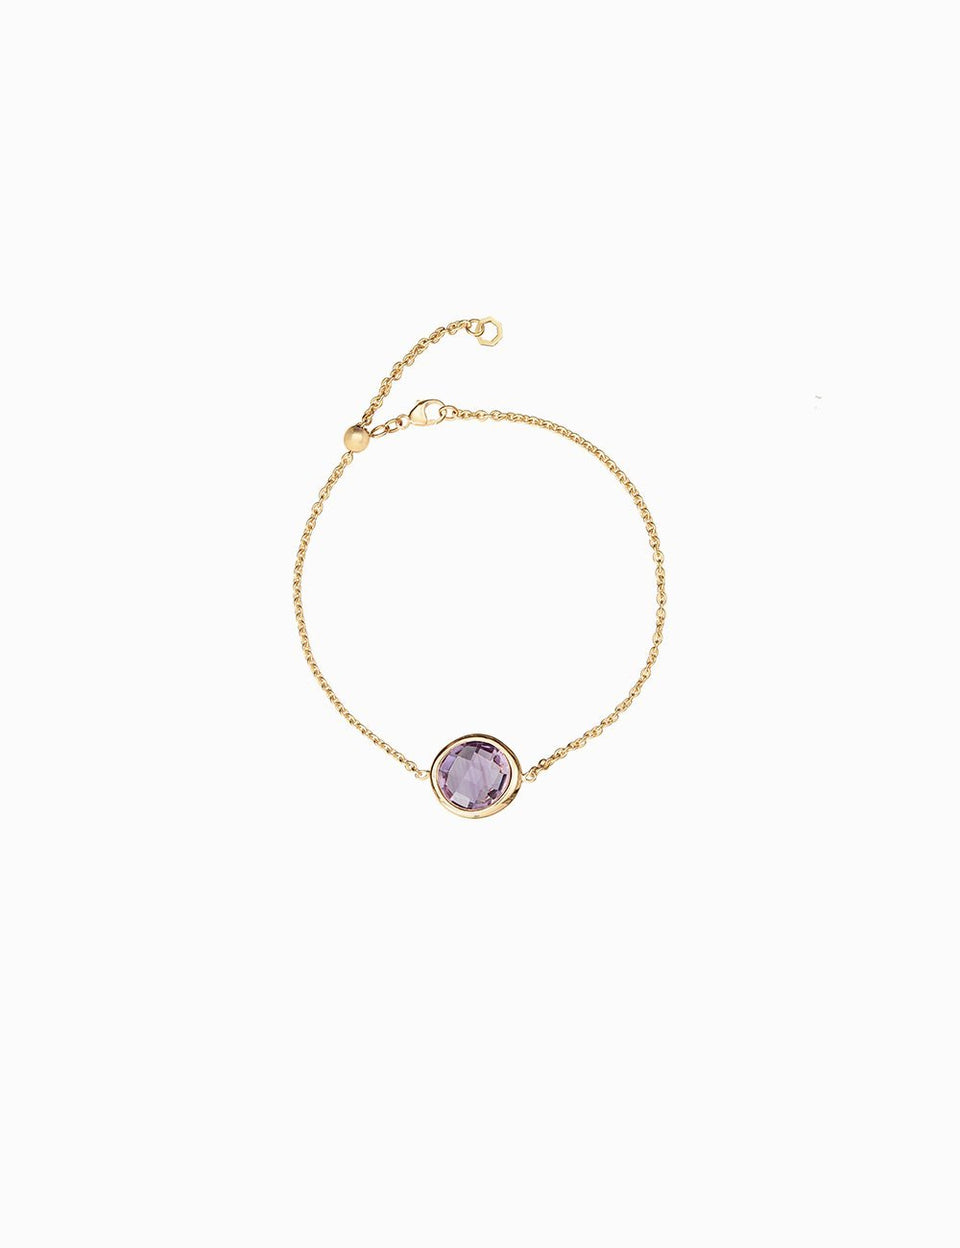 Roosik&Co - Blossom Bud Bracelet- Yellow Gold and Natural Gems